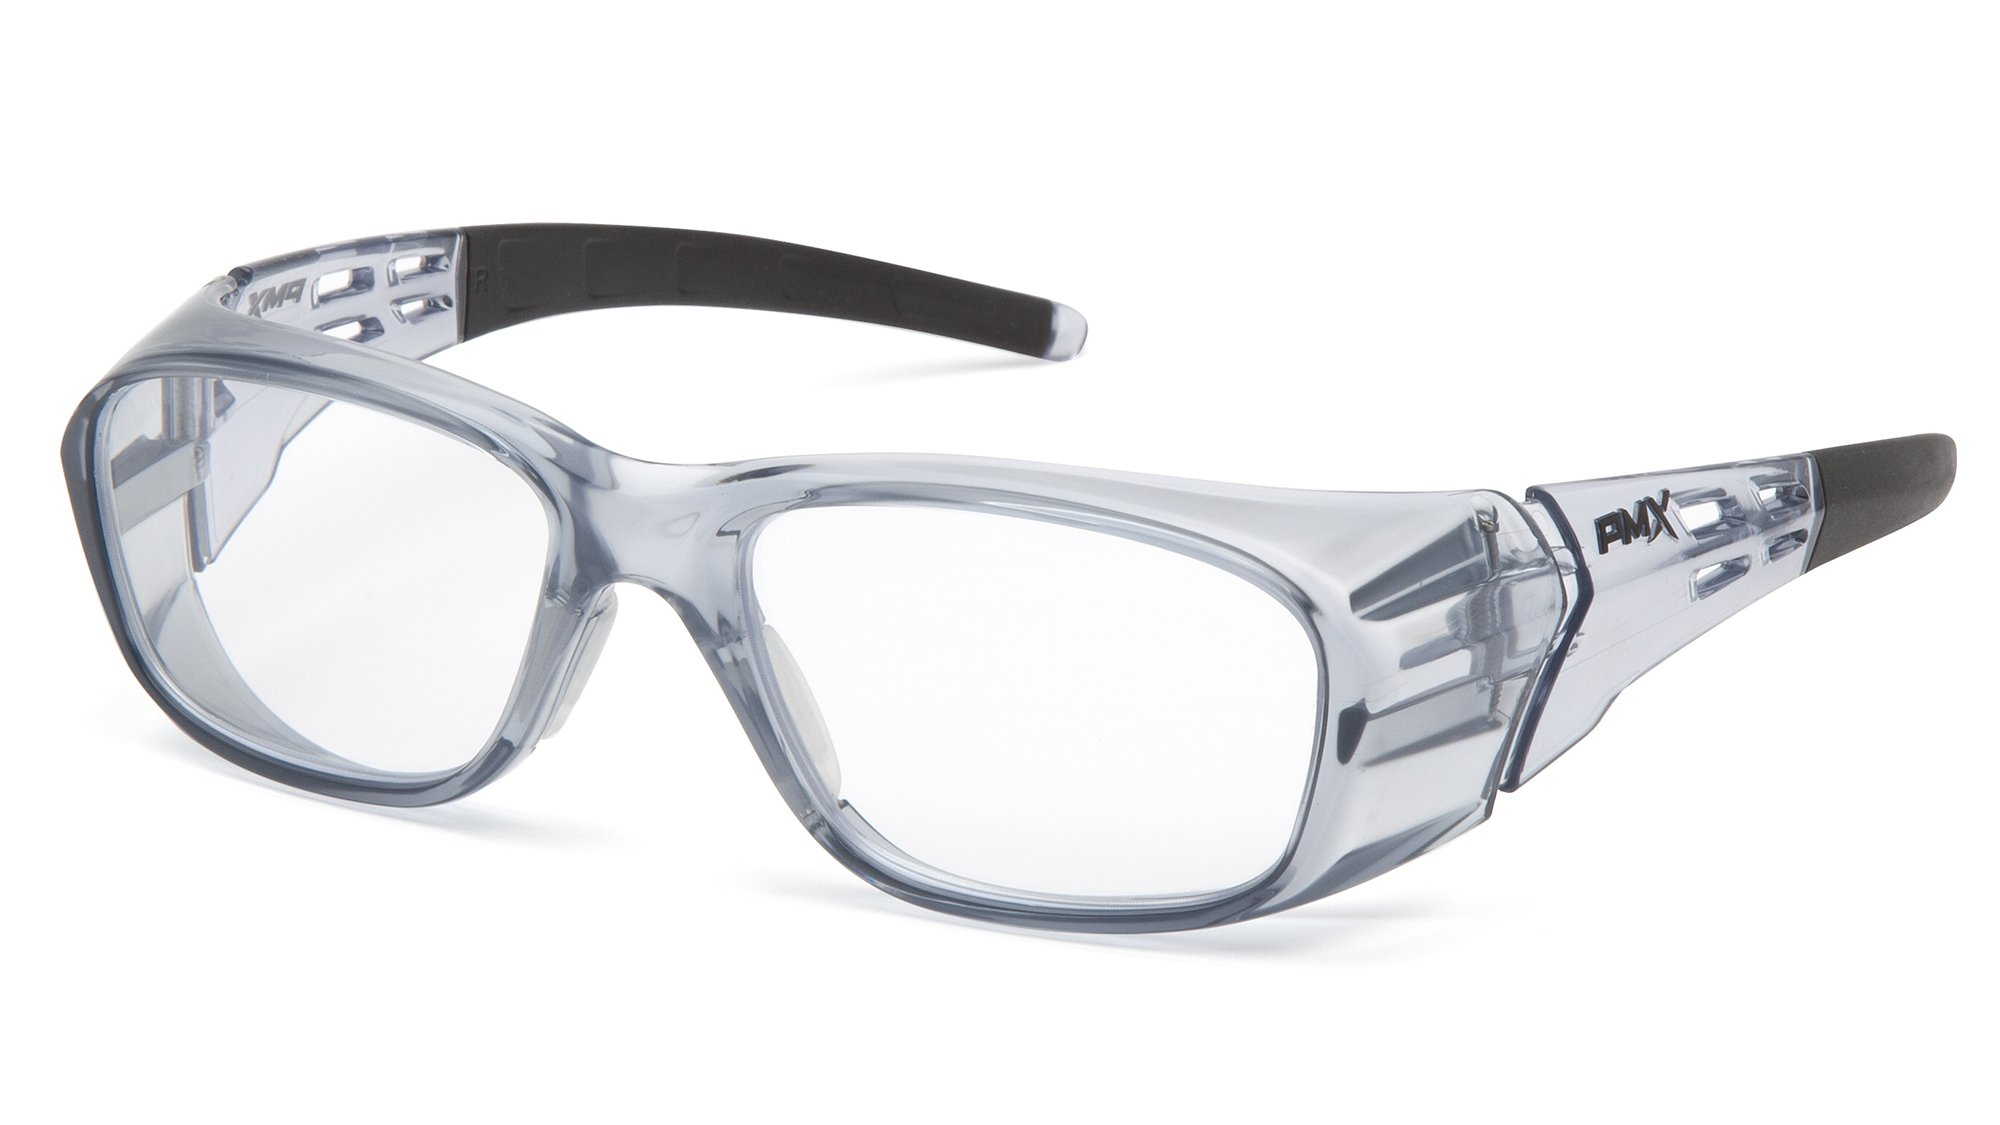 Pyramex Safety Emerge Plus Readers Safety Glasses, 3.0